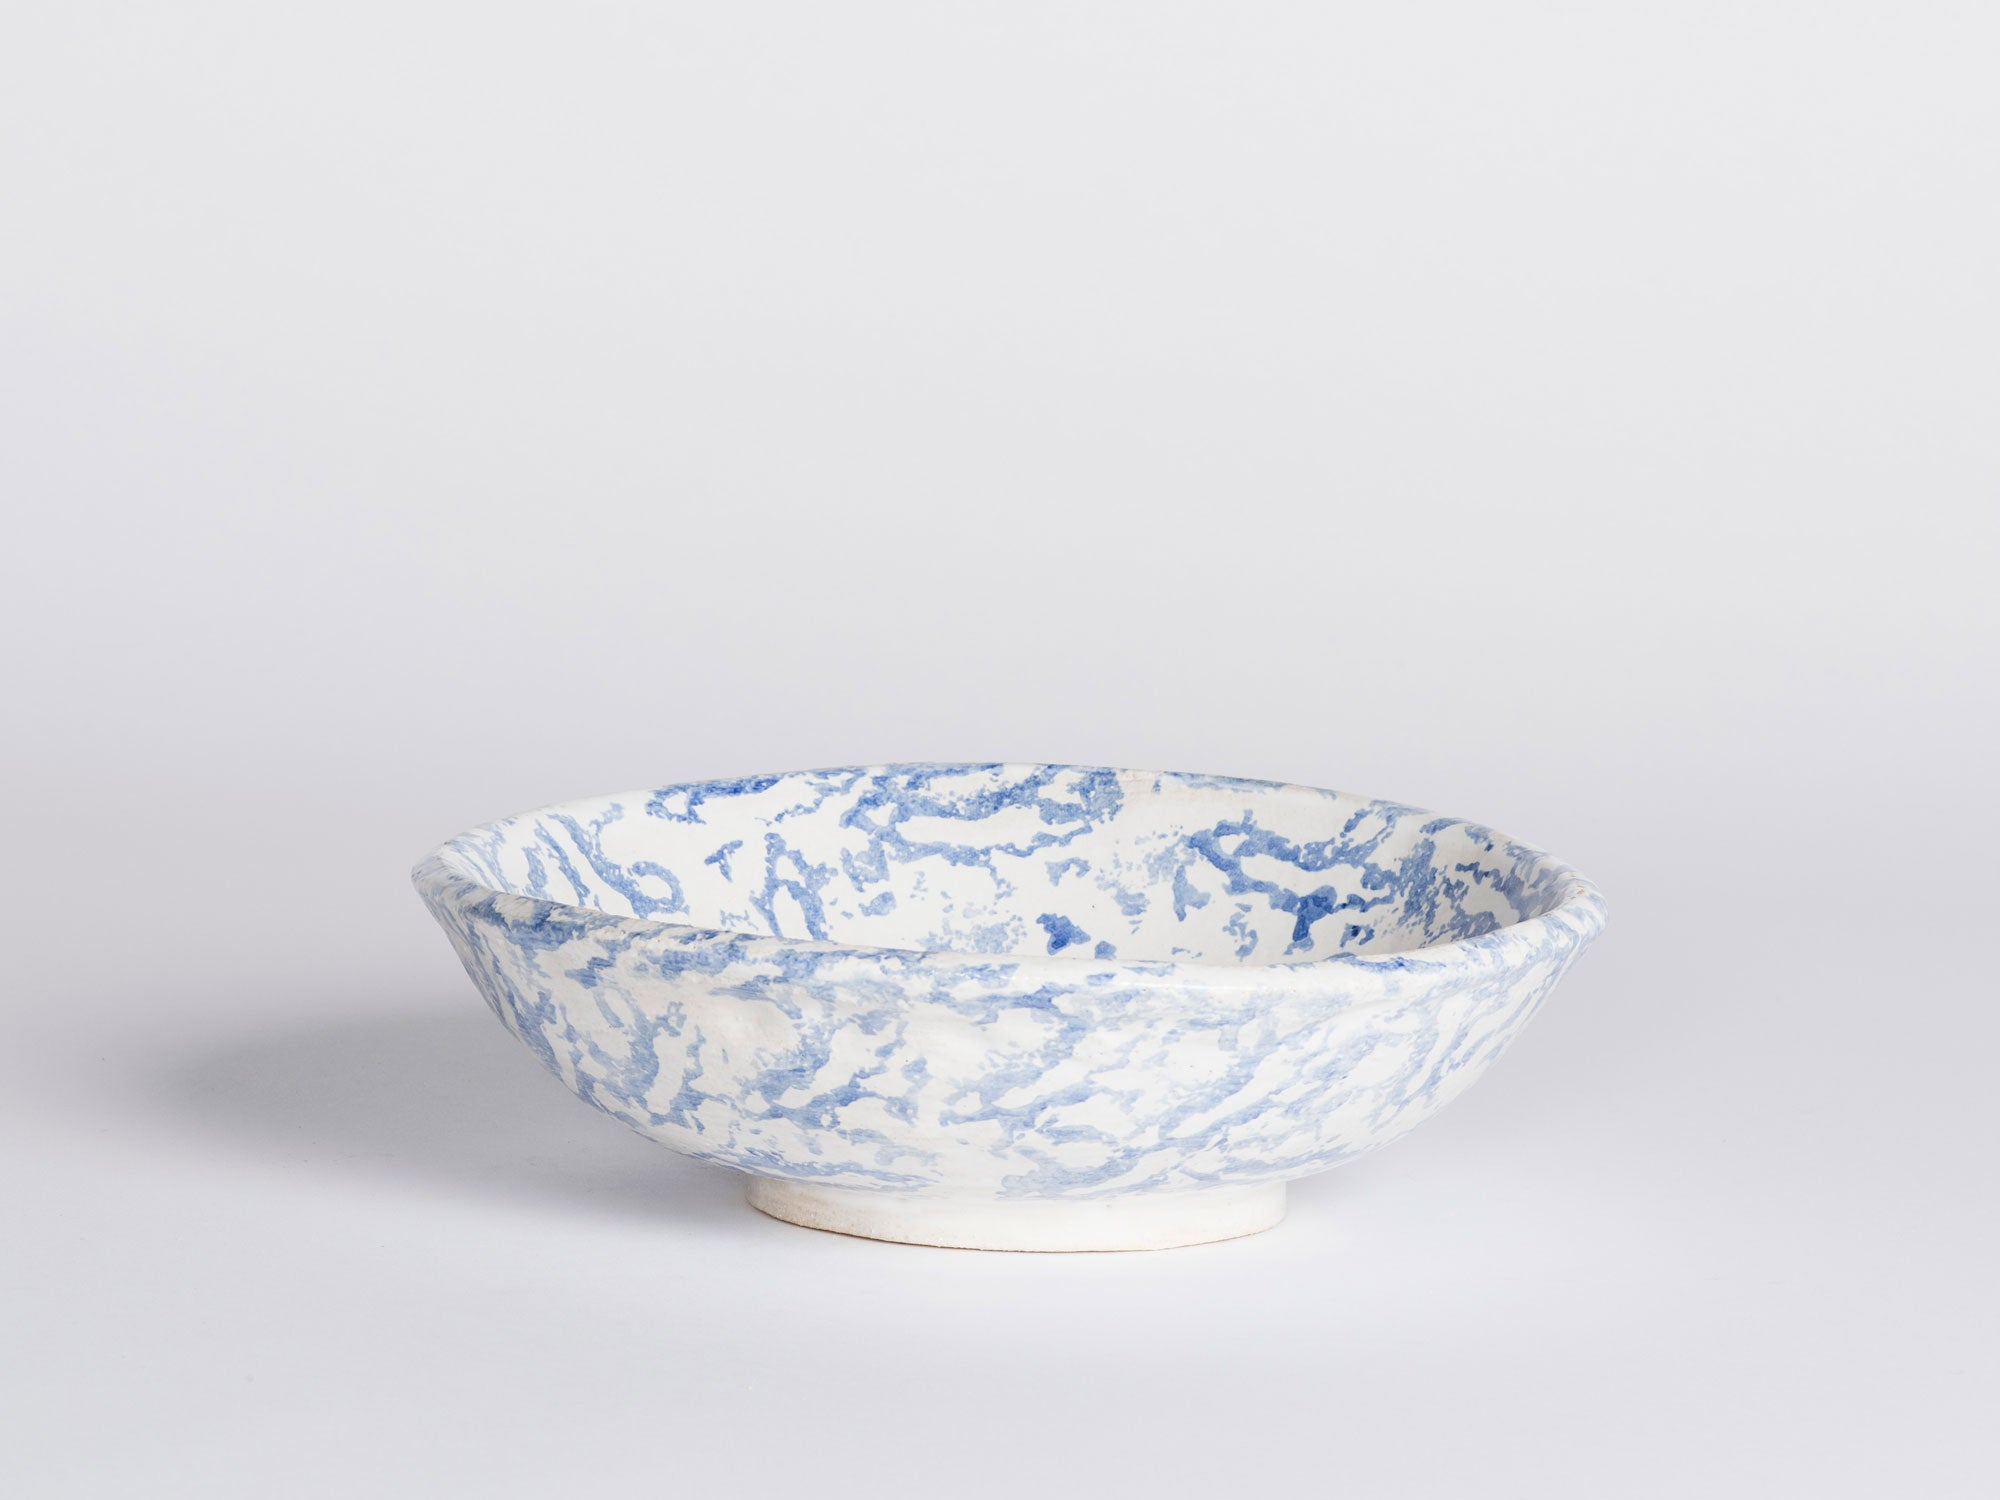 Morgan Peck Bowl - Blue Spongeware